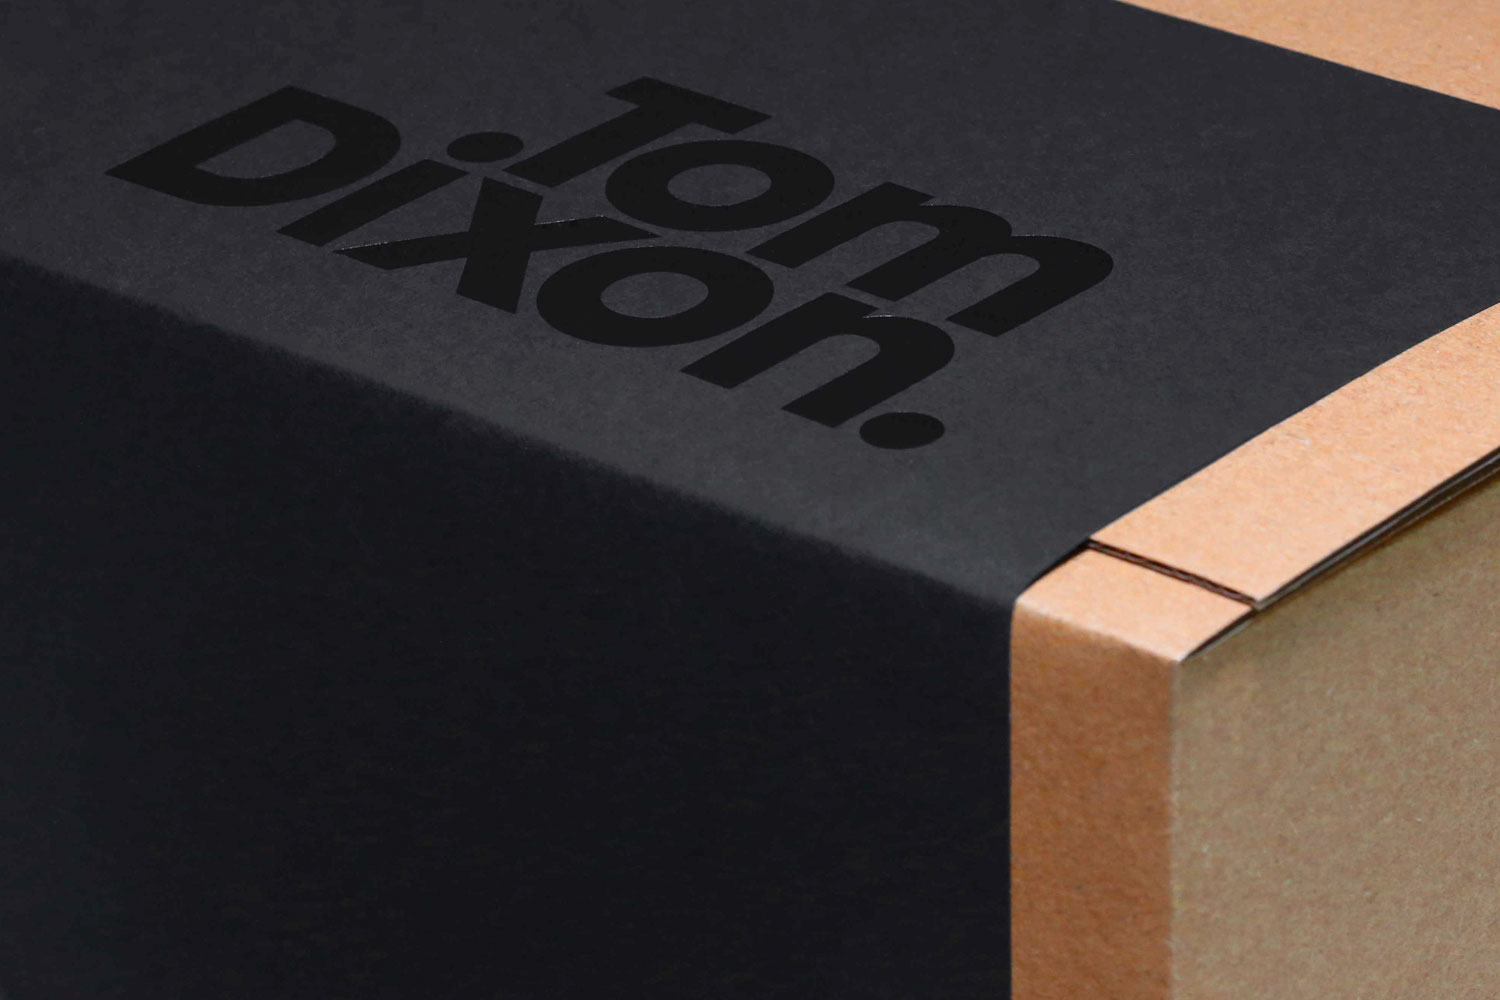 Progress Packaging Tom Dixon Environmentally Friendly Luxury Bespoke Retail Pcw Recyclable Corrugate Mailing Boxes Range Sticker E Commerce Tear Strip 03